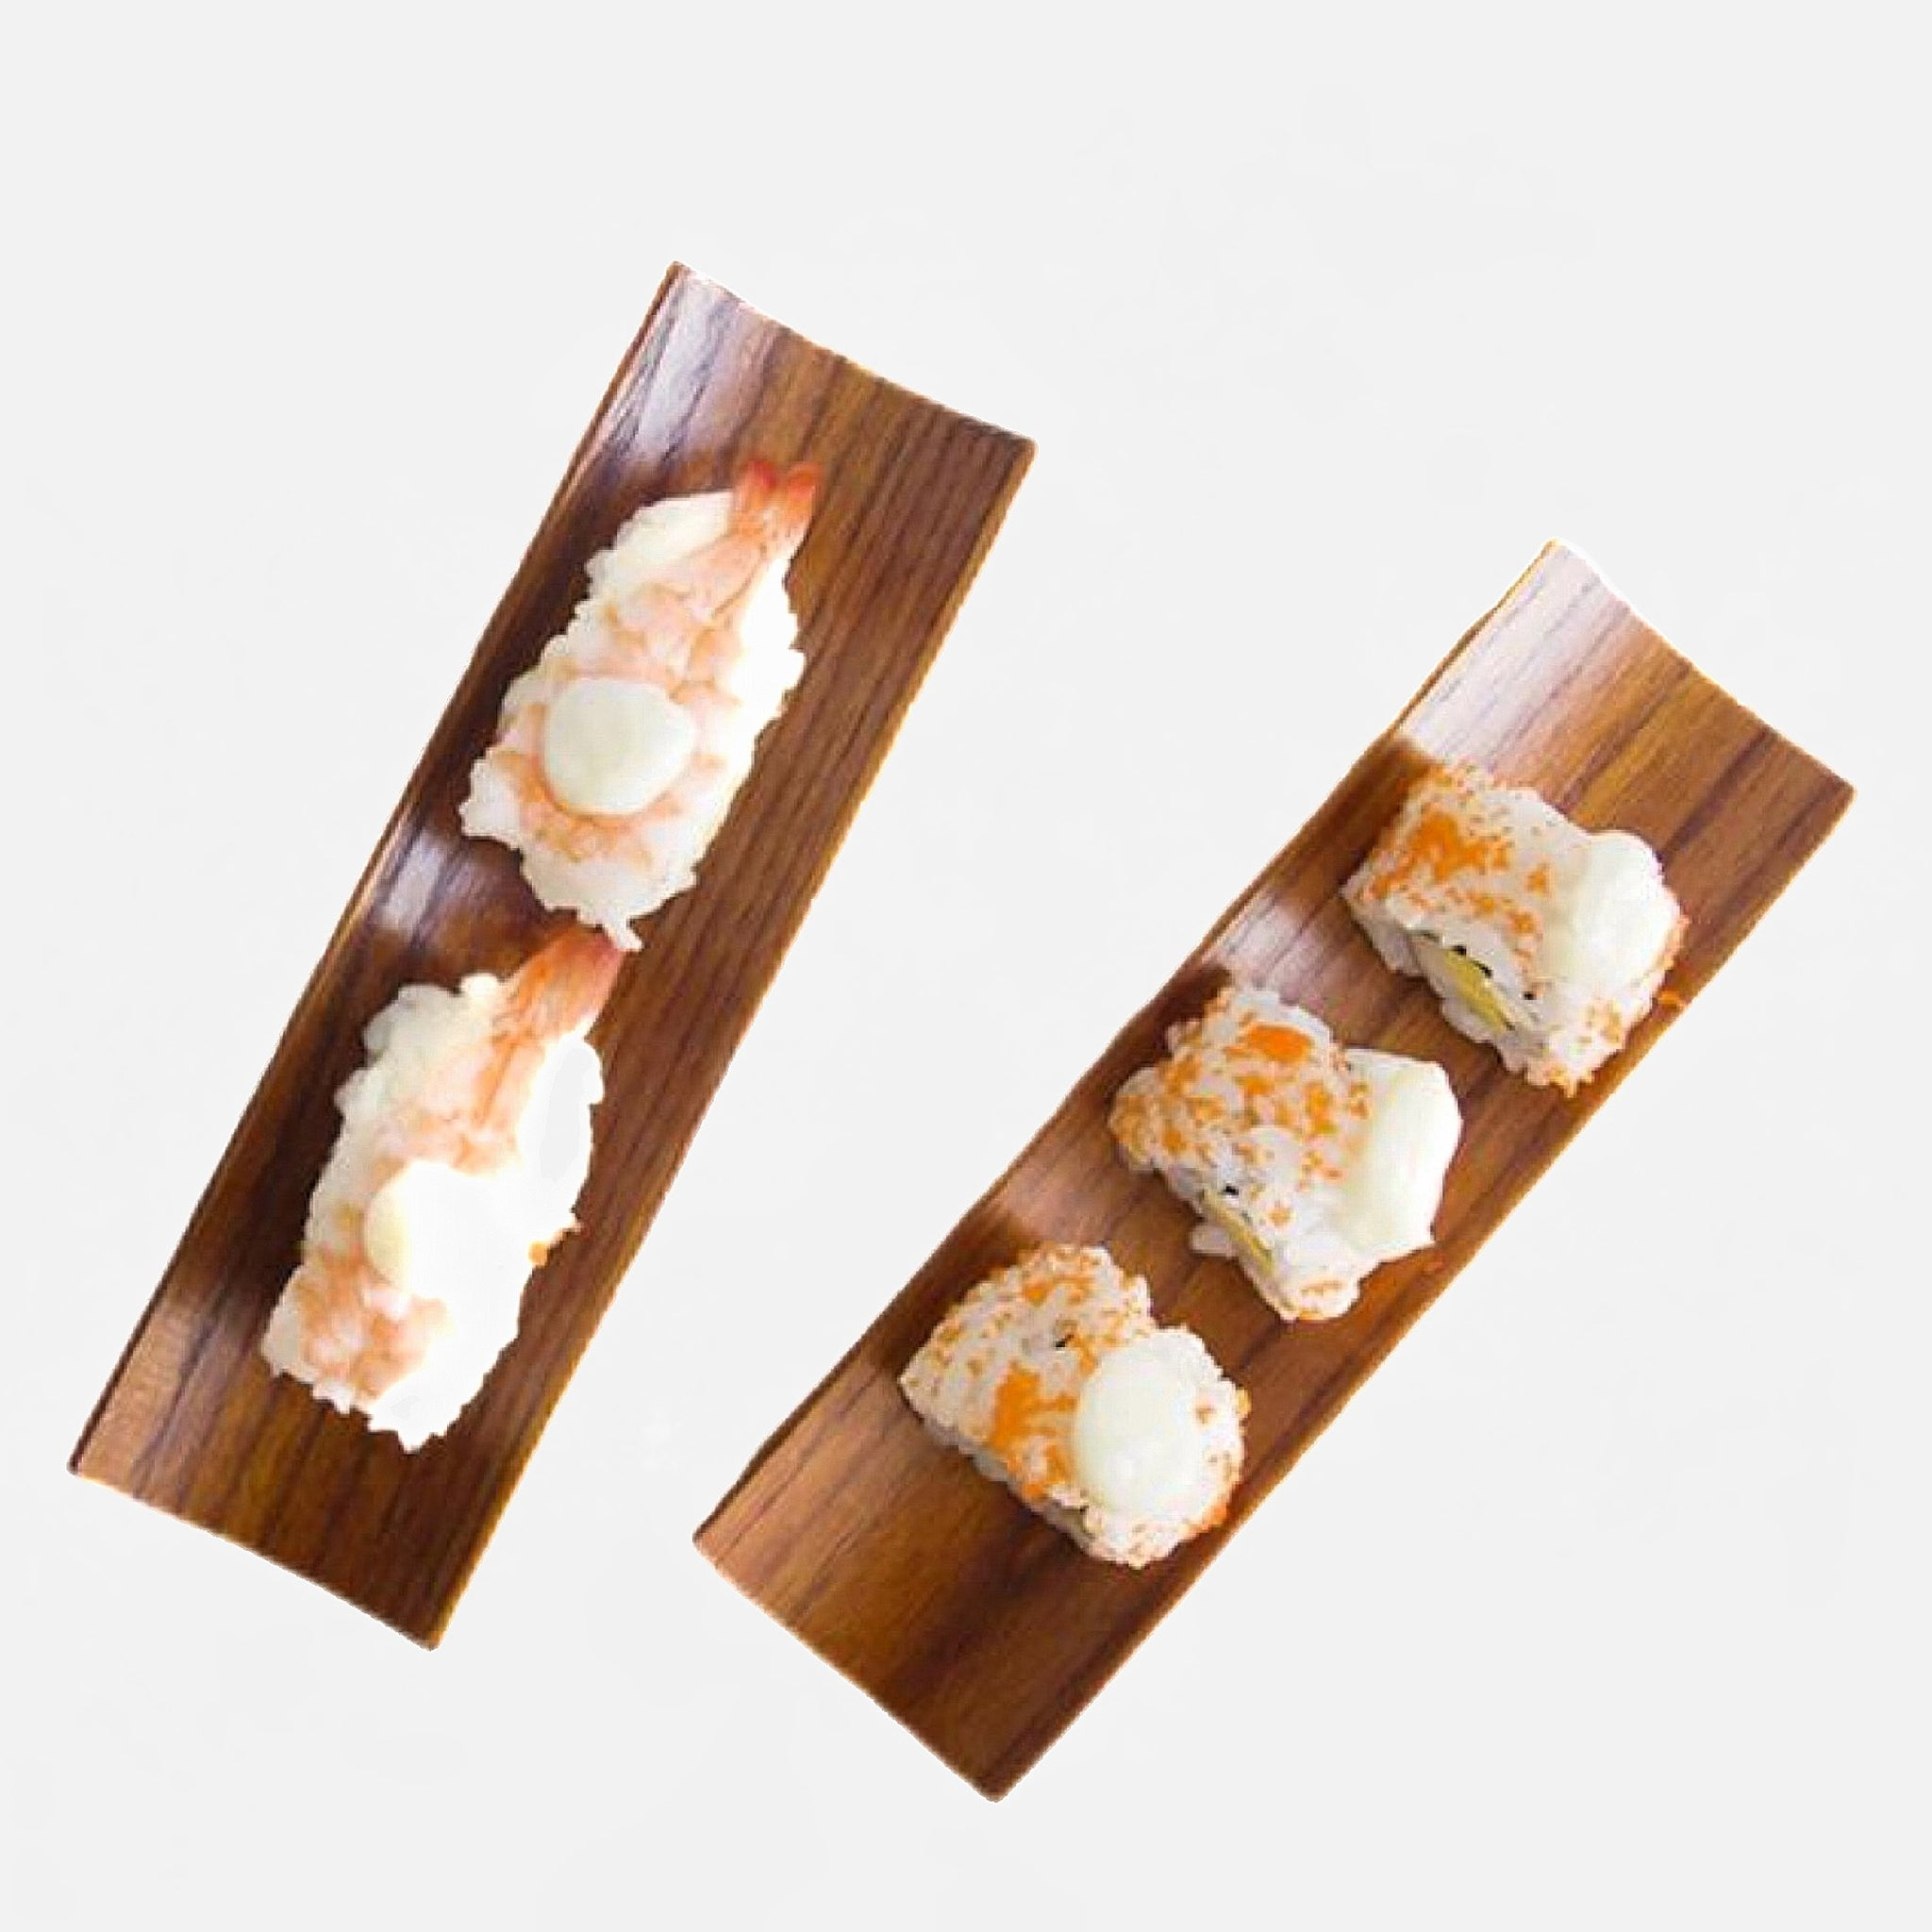 Japanese Wooden Dumplings Sushi Tray Trend